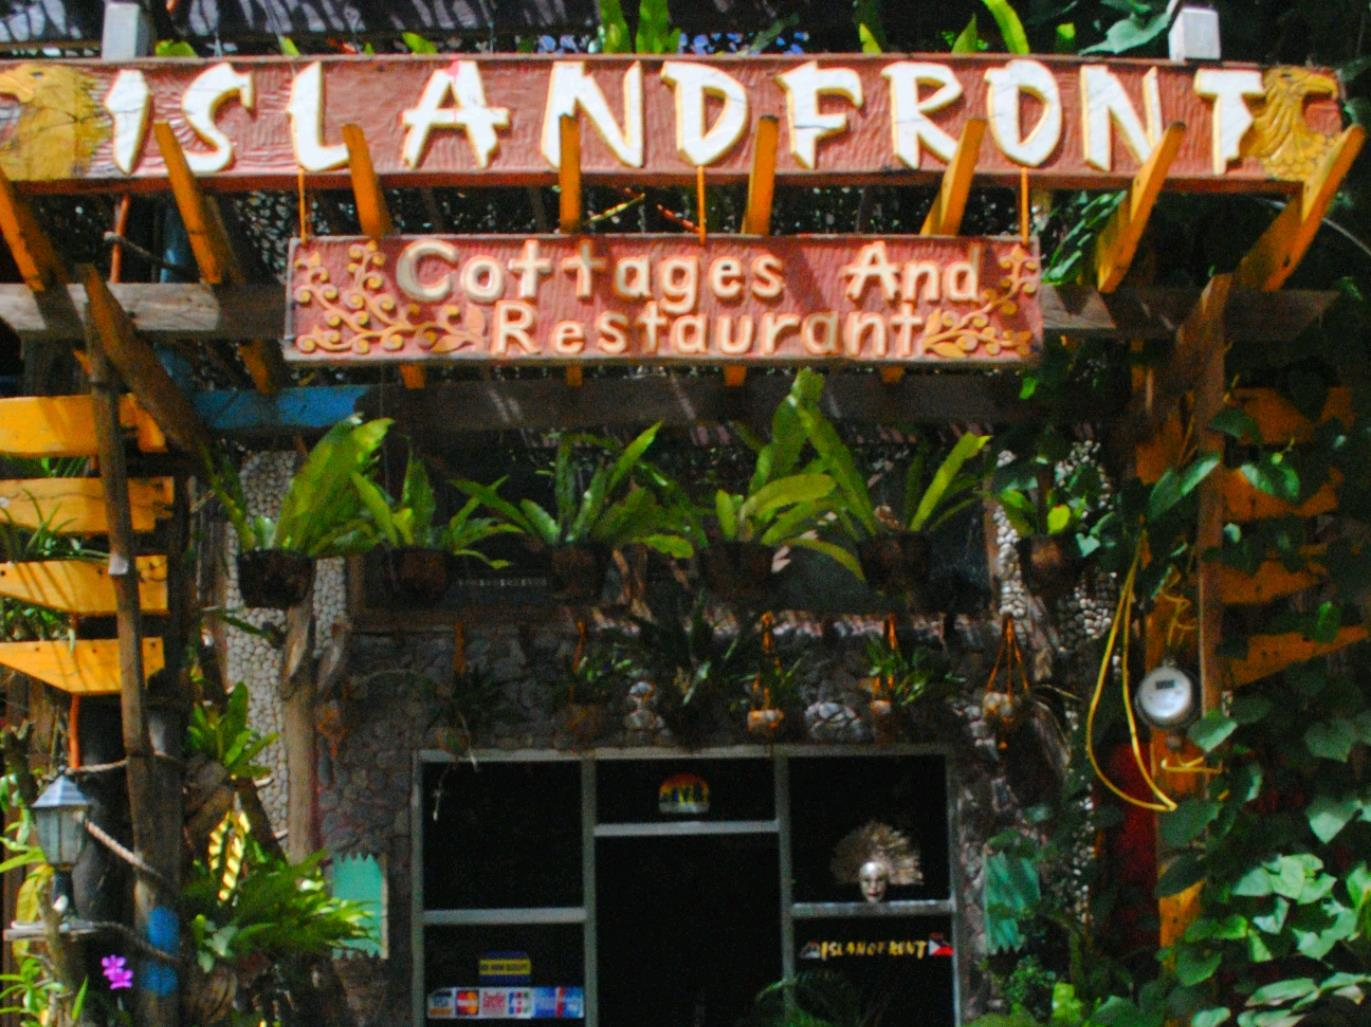 Islandfront Cottages And Restaurant Deals